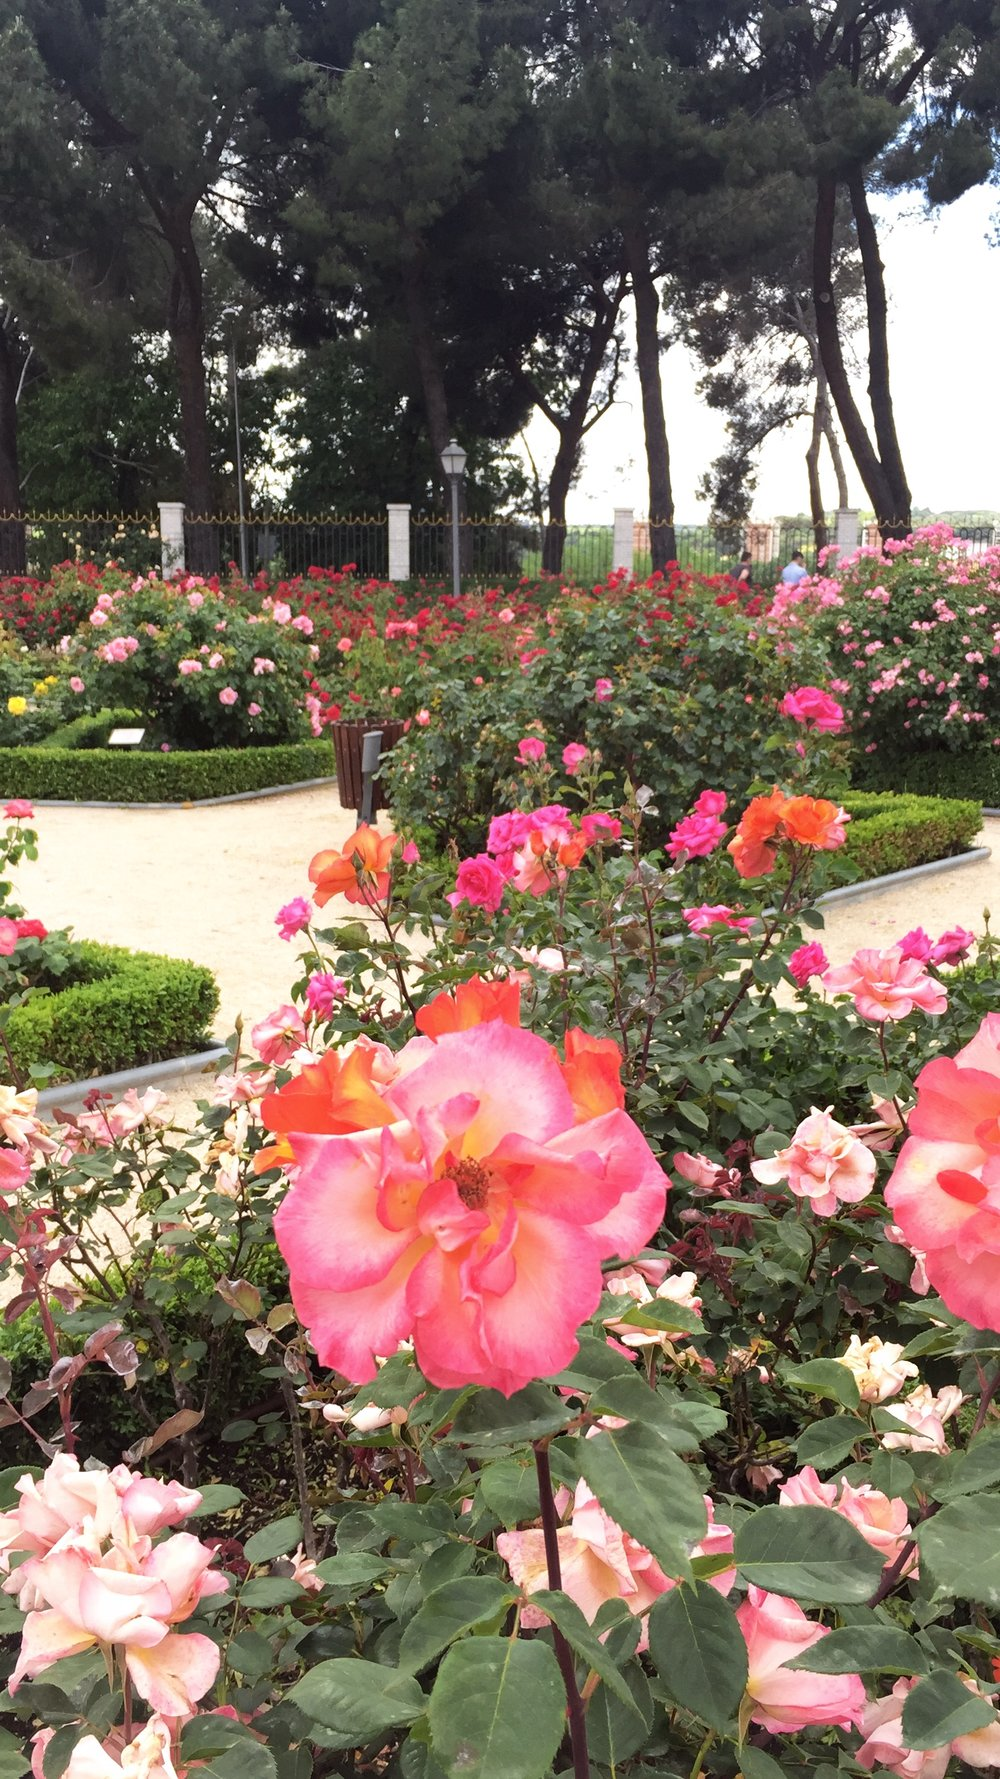 Rose Garden in Madrid